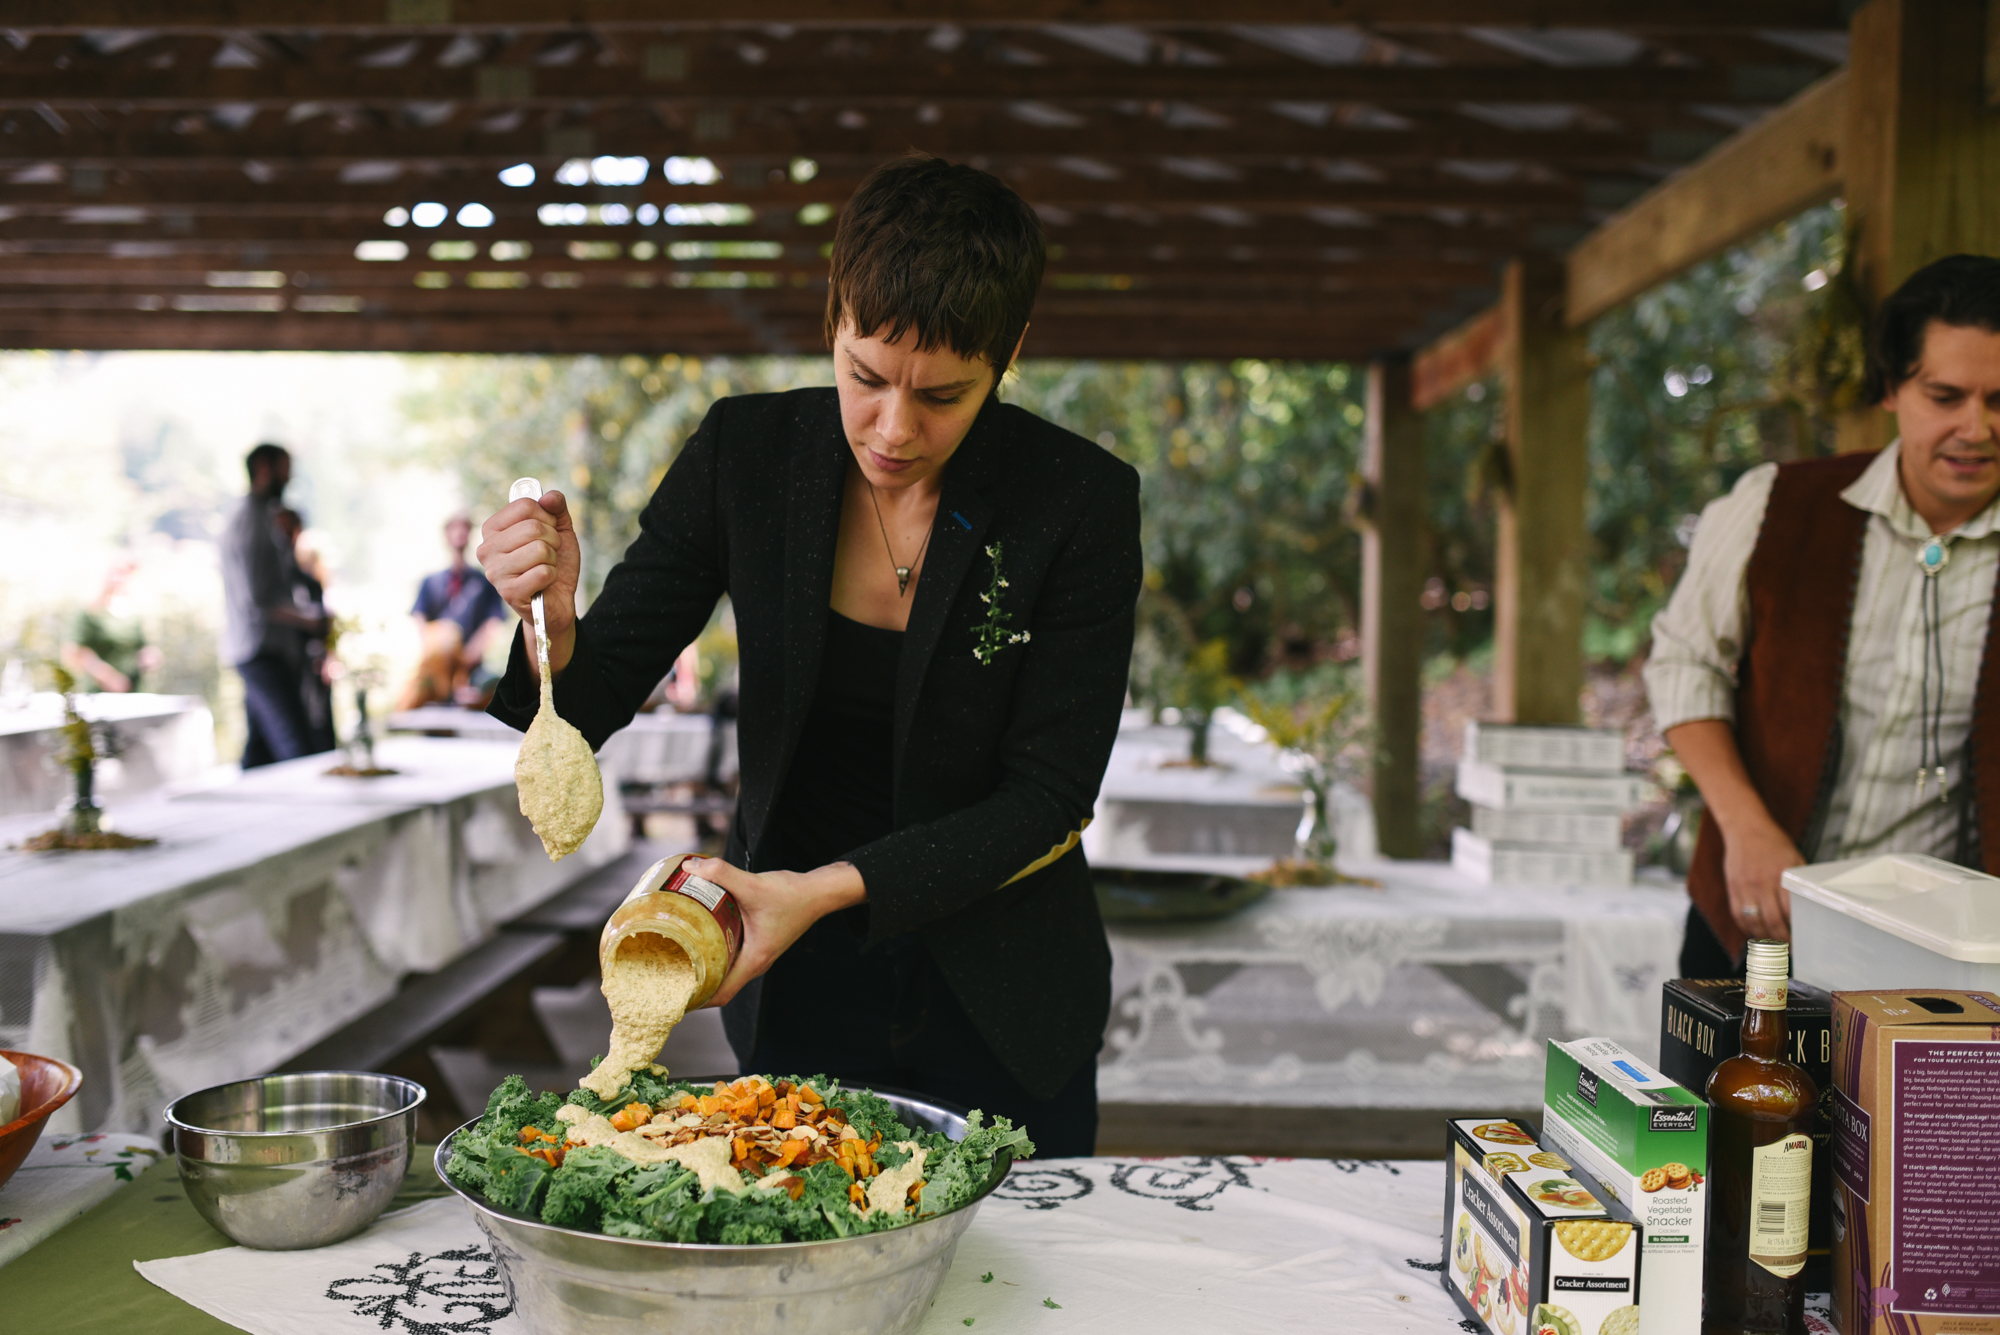 Mountain Wedding, Outdoors, Rustic, West Virginia, Maryland Wedding Photographer, DIY, Casual, Family prepping food for reception